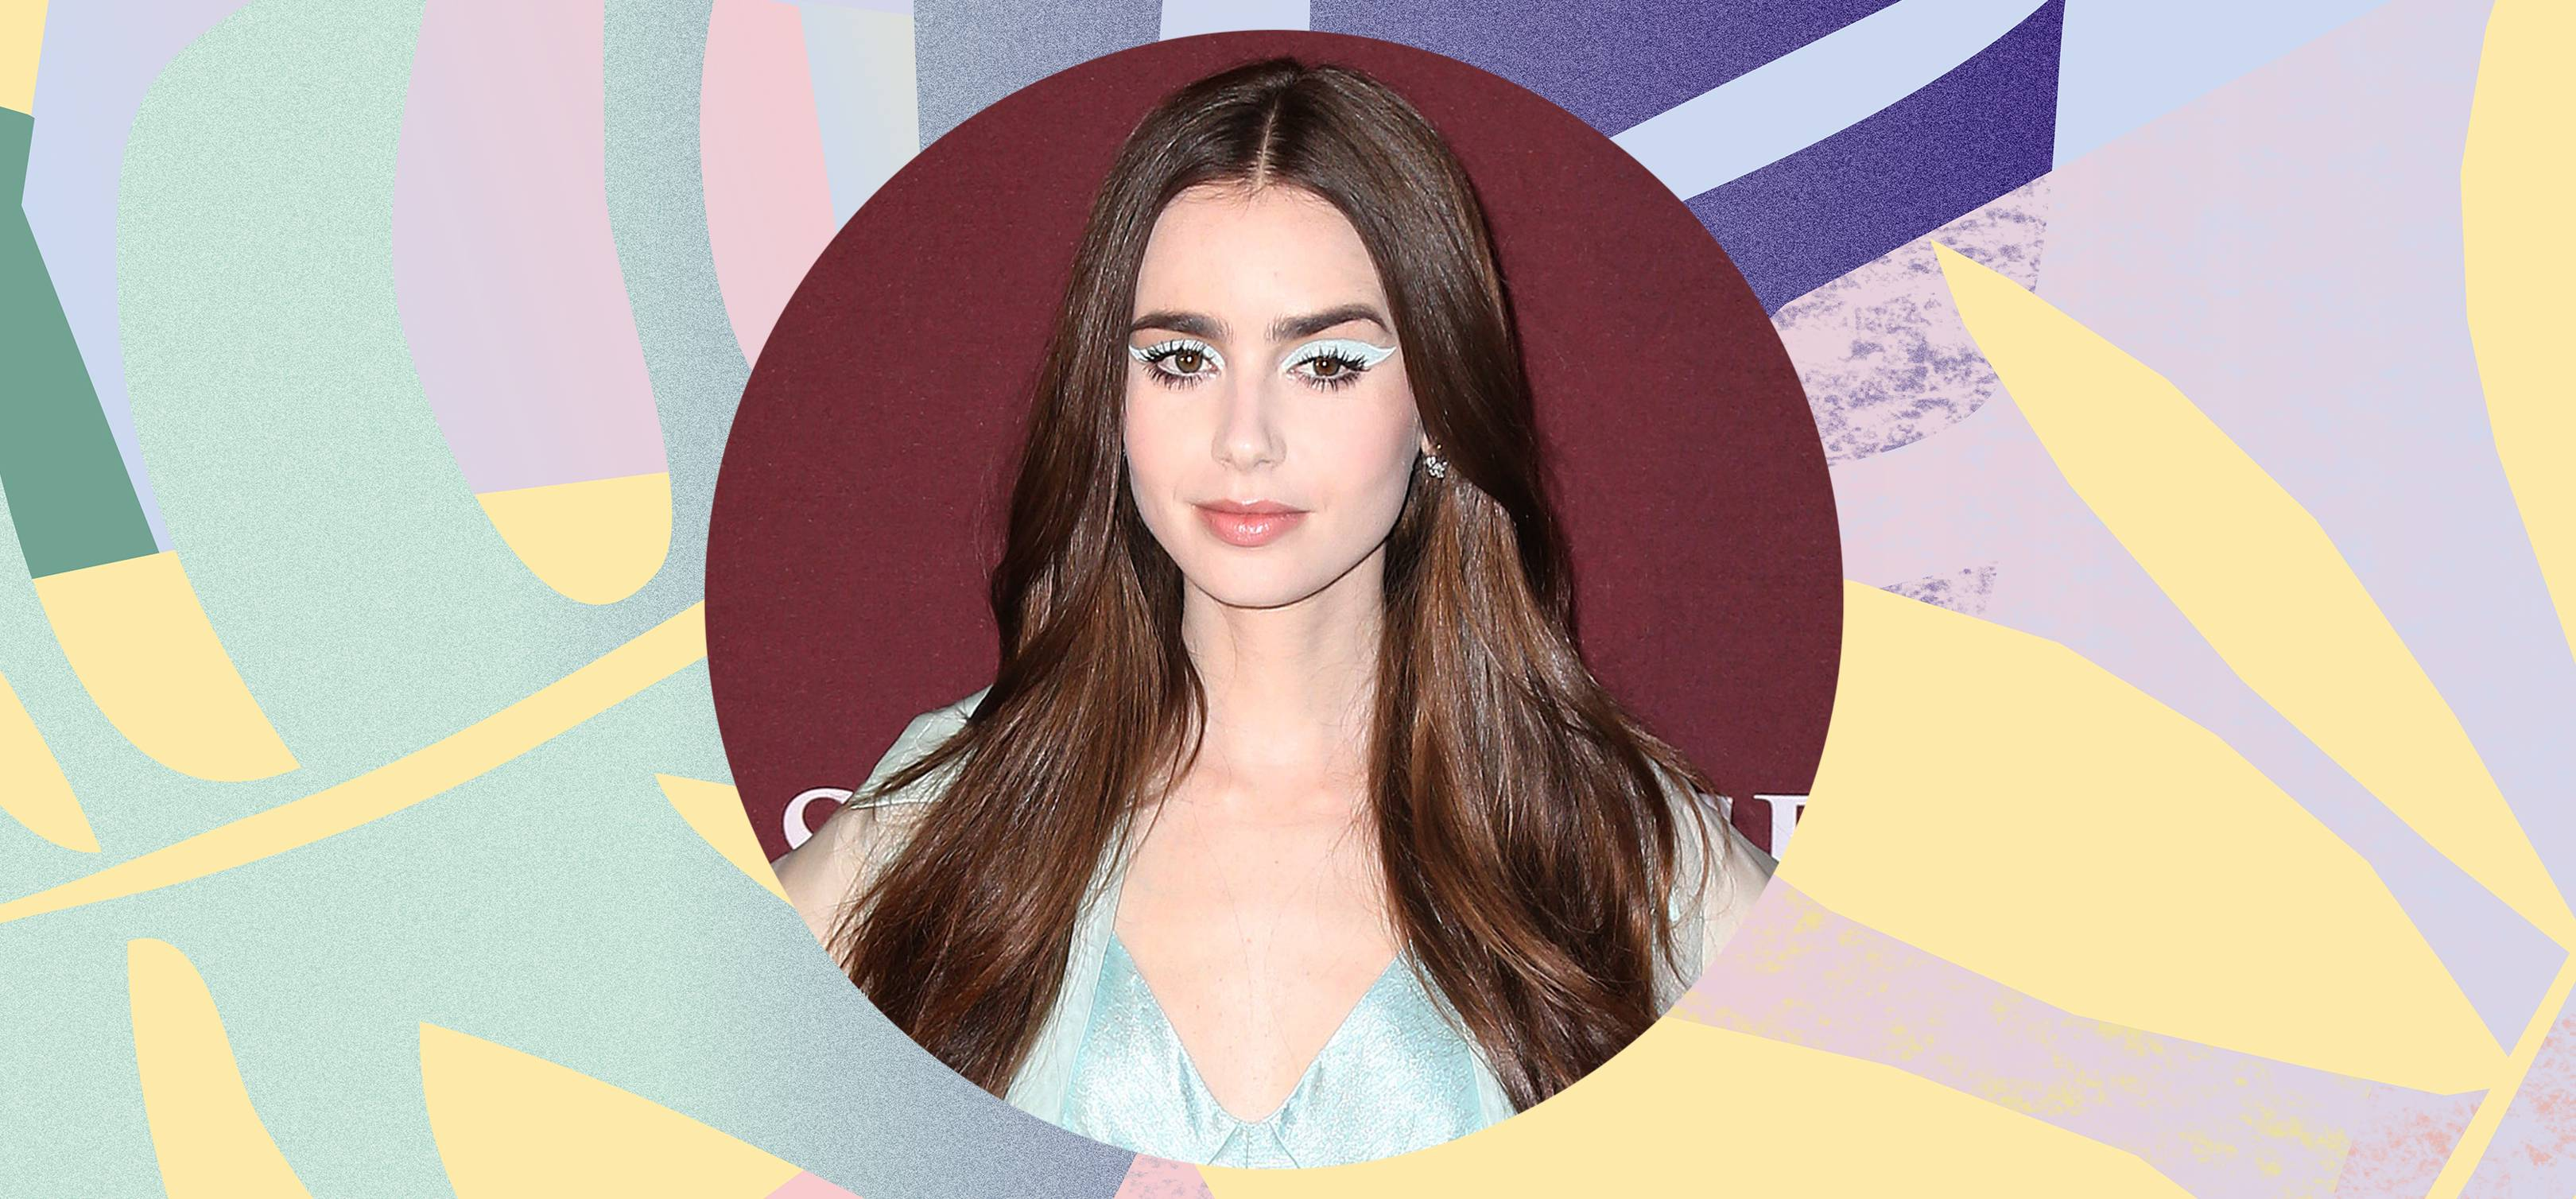 ca78669844a4a Hairstyles For Long Hair: Long Hair Trends, Ideas & Tips 2018   Glamour UK